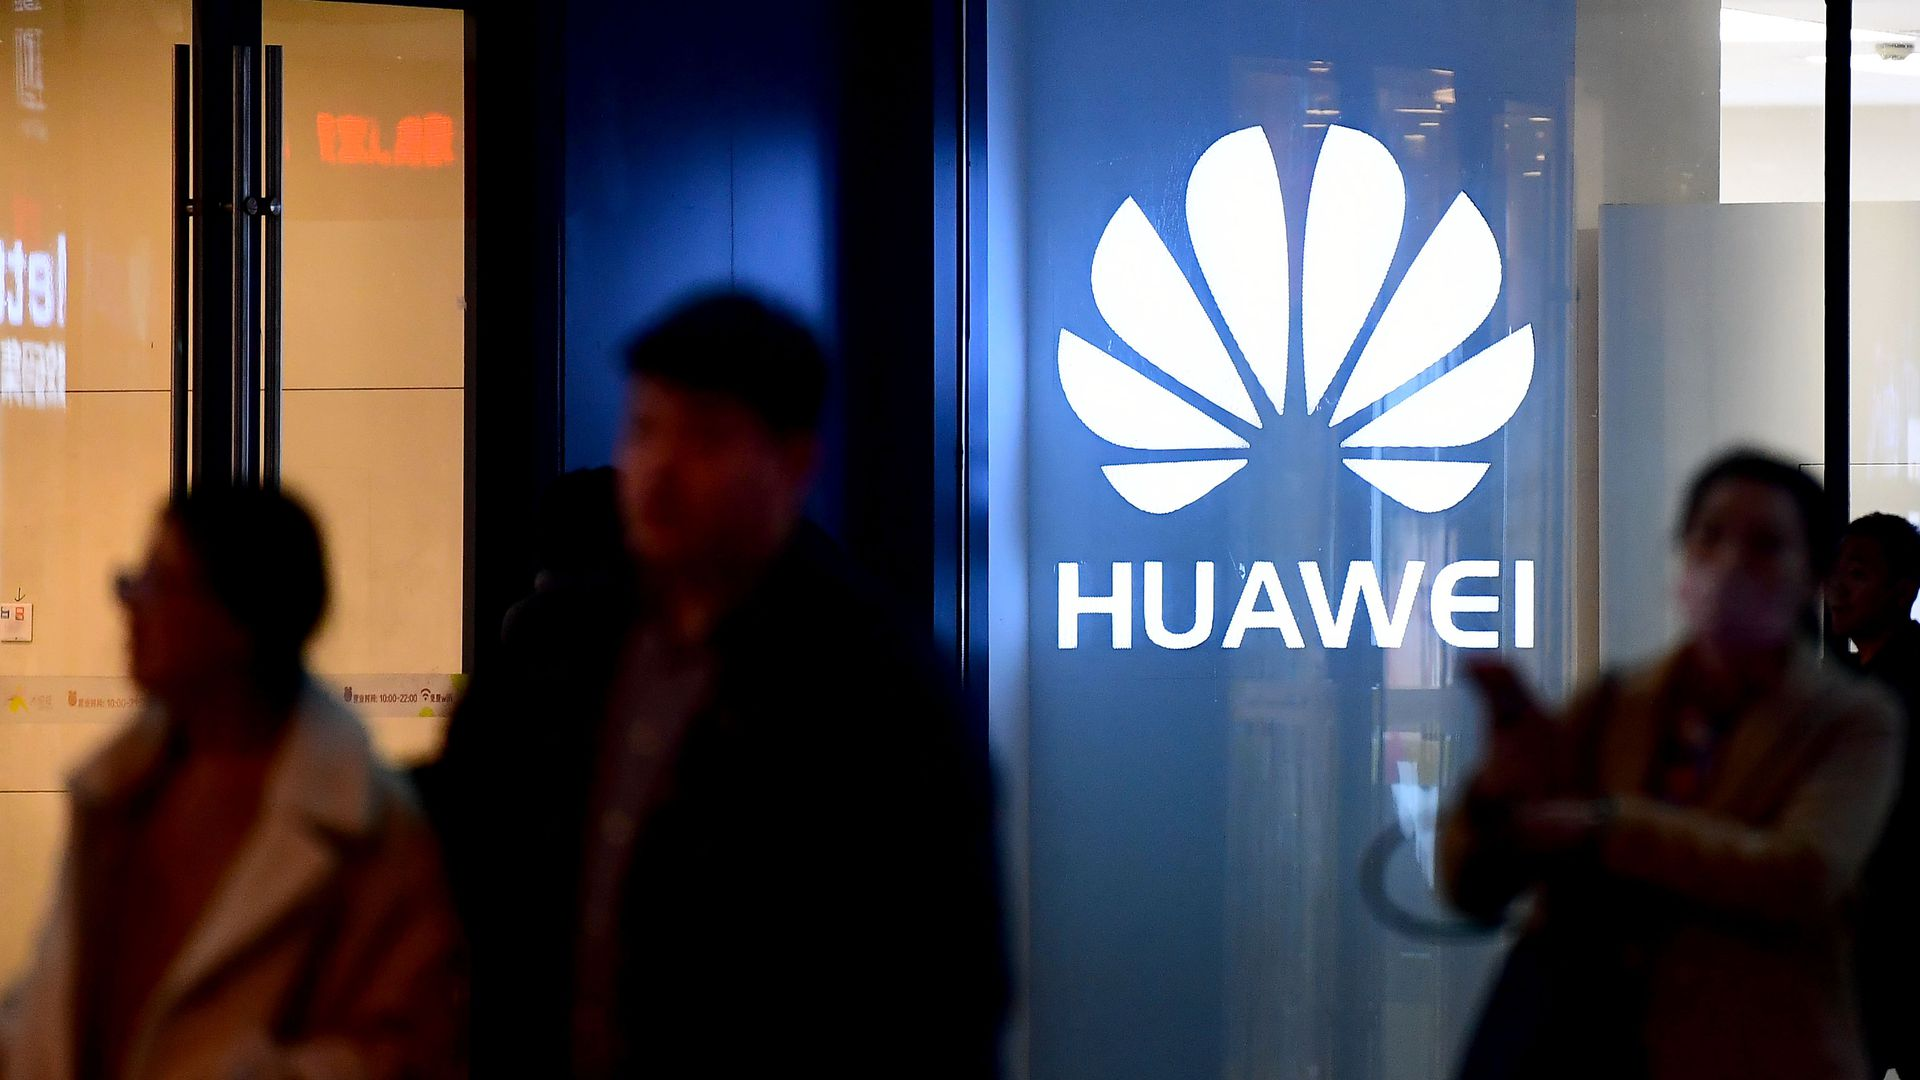 People walk by a Huawei store in Shenyang, Liaoning Province of China.